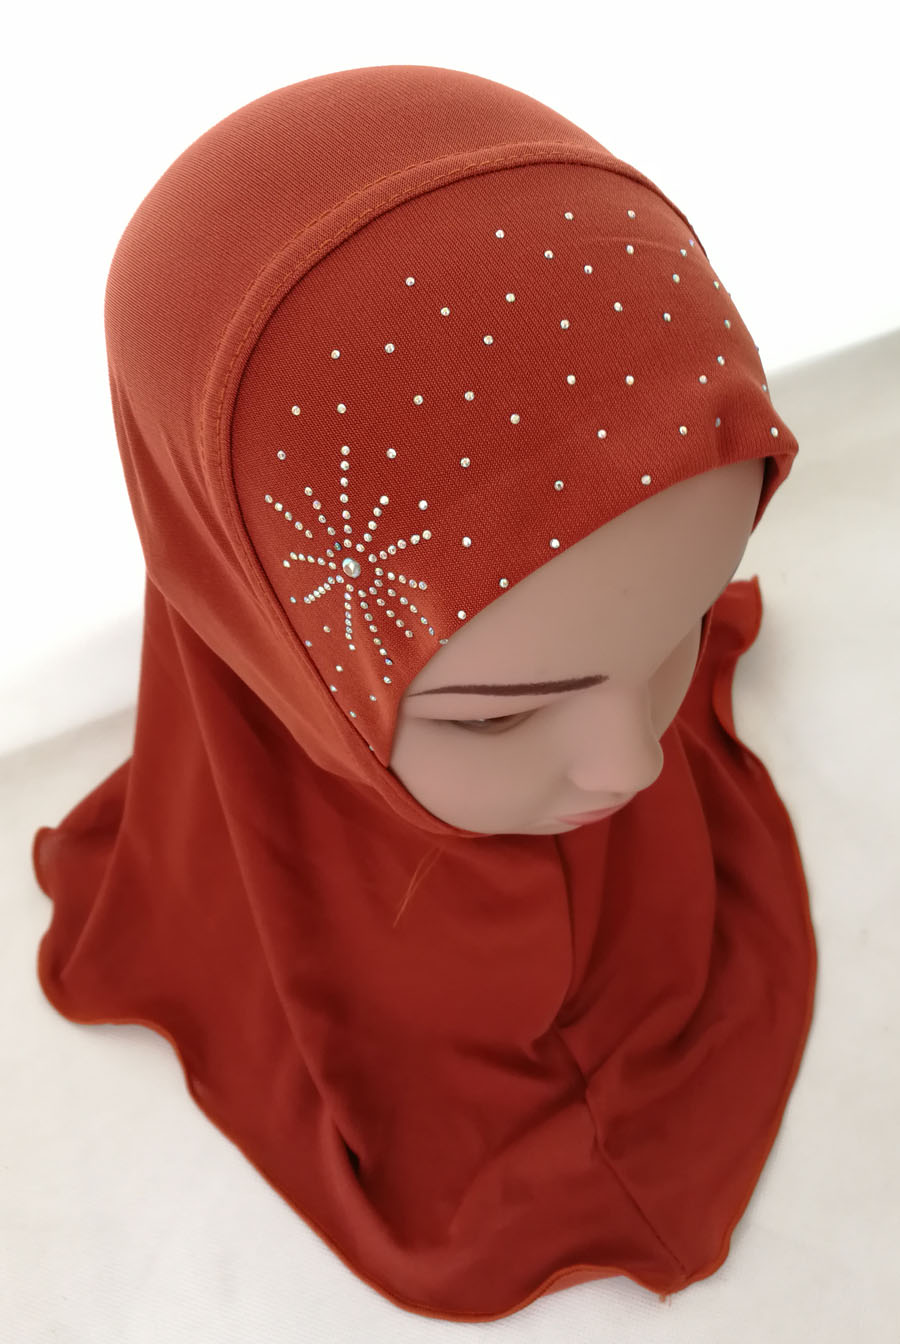 Girls-Kids-Muslim-Hijab-Hats-Islamic-Arab-Scarf-Caps-Shawls-Amira-Headwear-3-8Y thumbnail 81